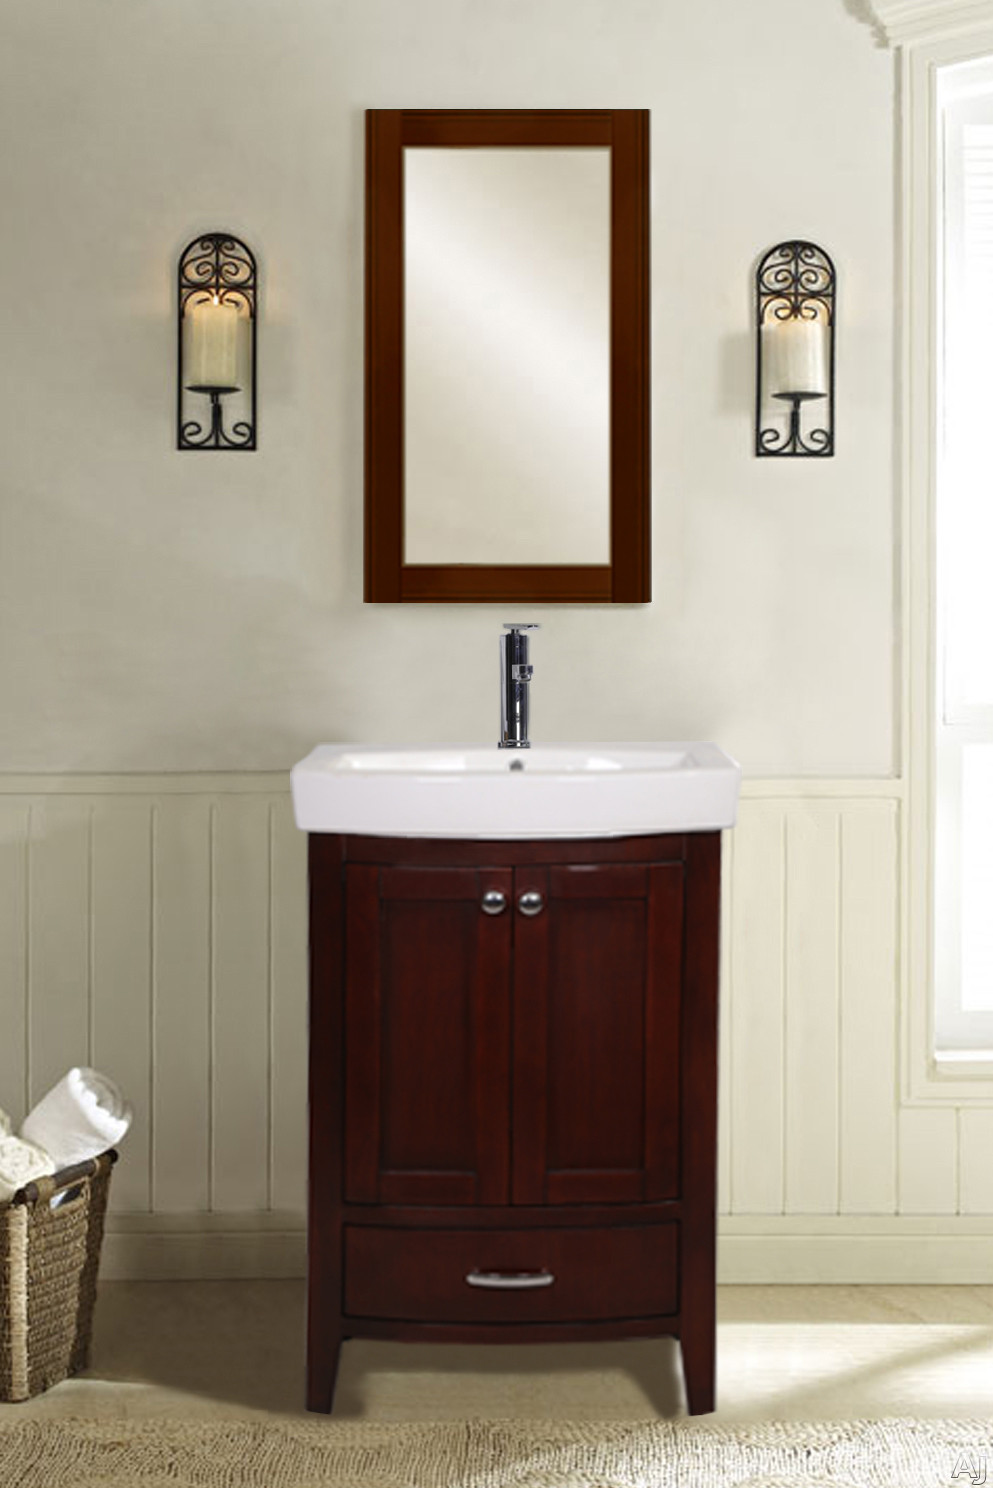 Empire Industries Arch Collection Amx 22 Inch Arch Collection Mirror For Bathroom Sink And Vanity